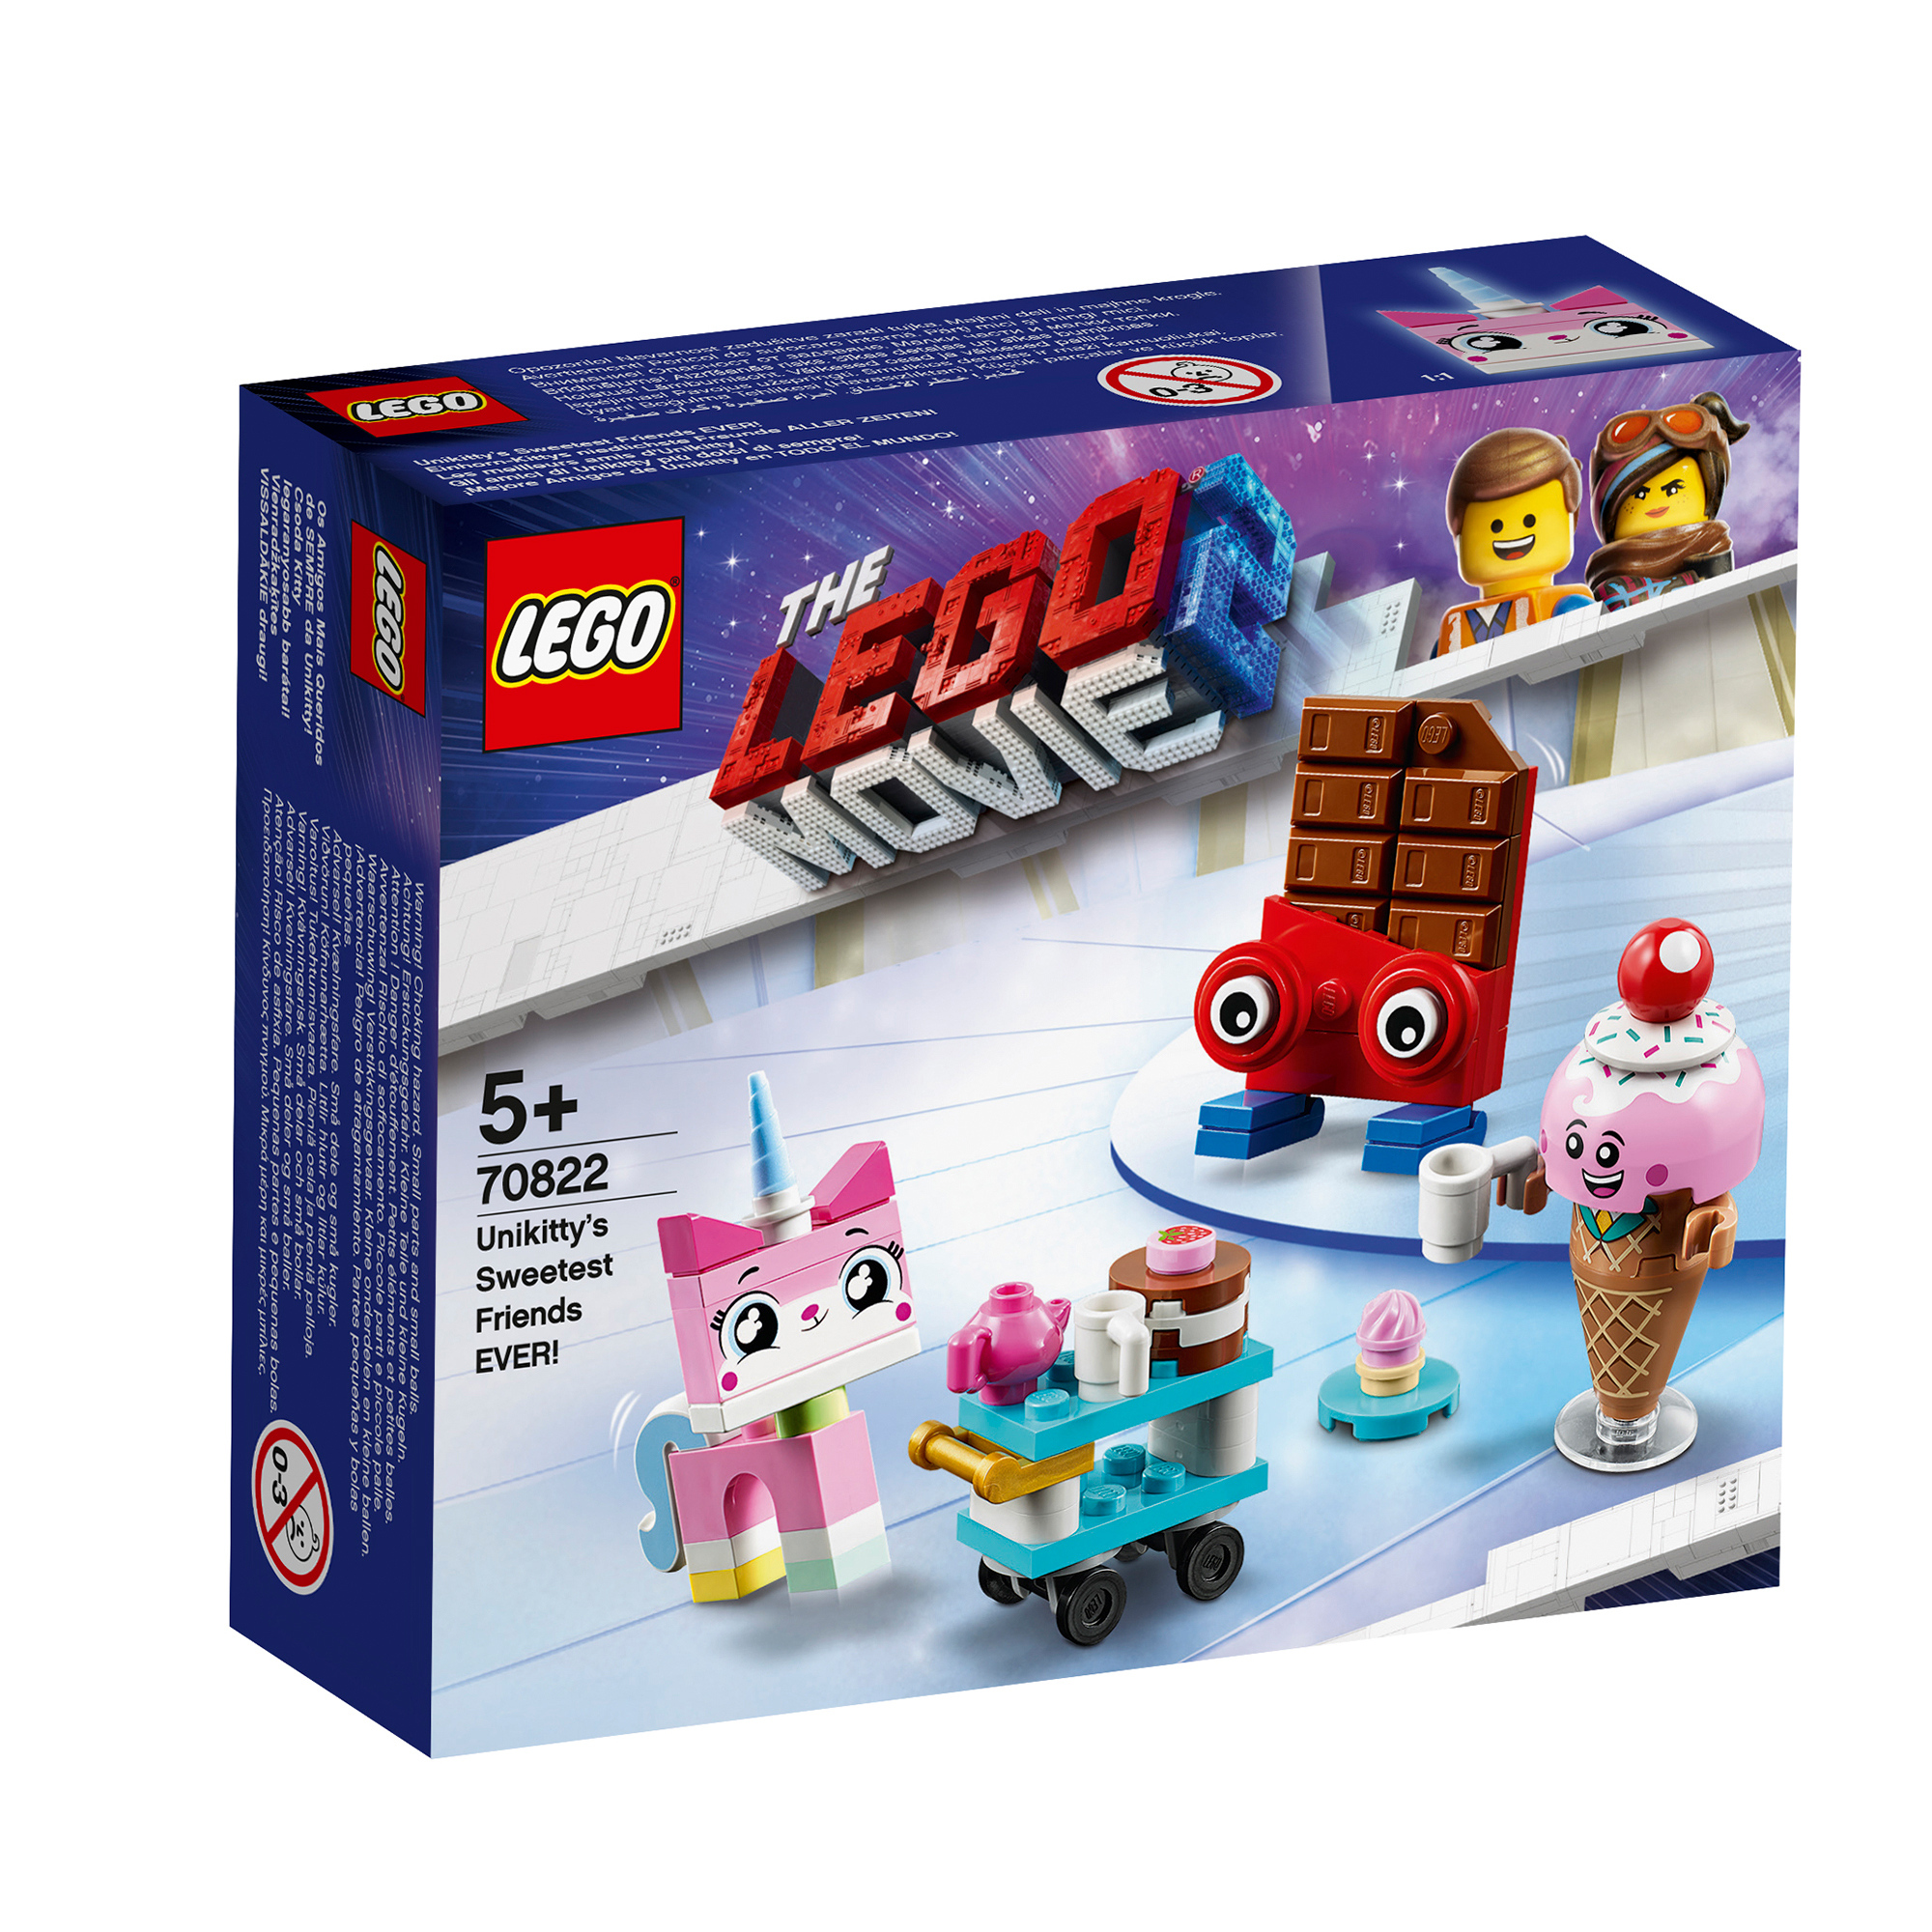 Picture of LEGO Movie 2 Unikitty's Sweetest Friends EVER 70822